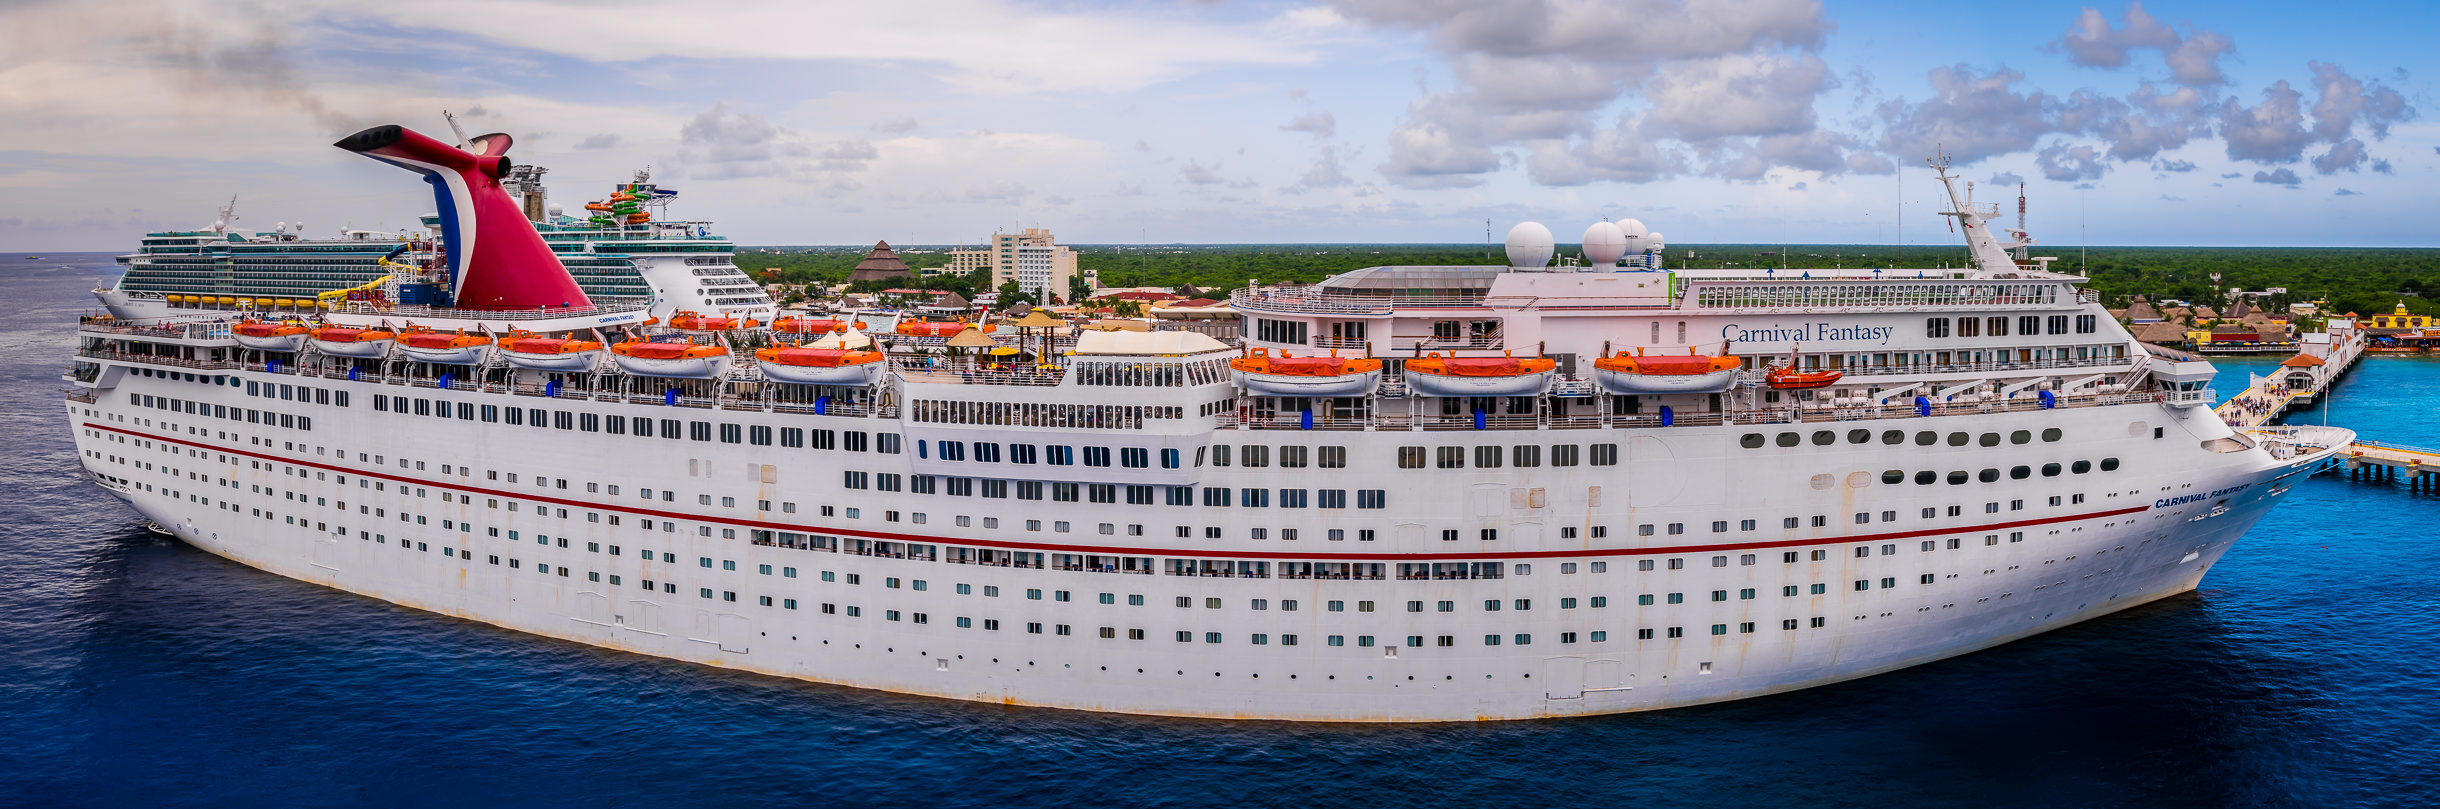 A panoramic view of the cruise shipCarnival Fantasy, docked in Cozumel, Mexico.(Click the photo to view a larger version)